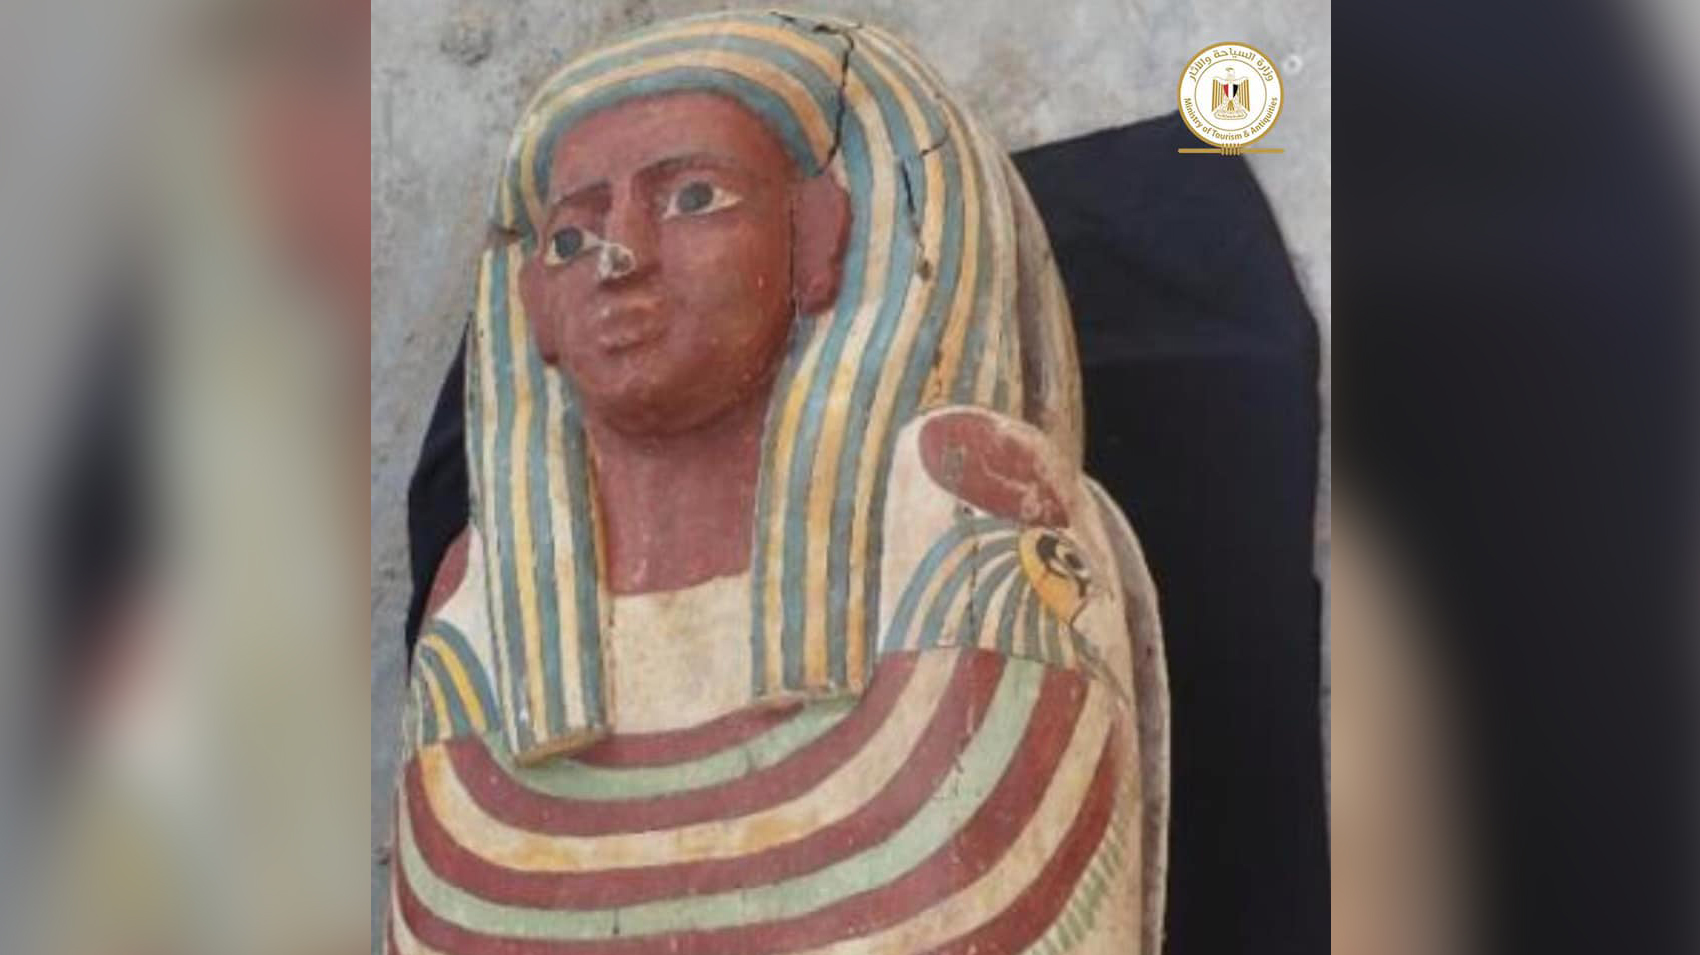 More than 50 wooden coffins have been found so far. Here, one of those wooden coffins from the site at Saqqara.